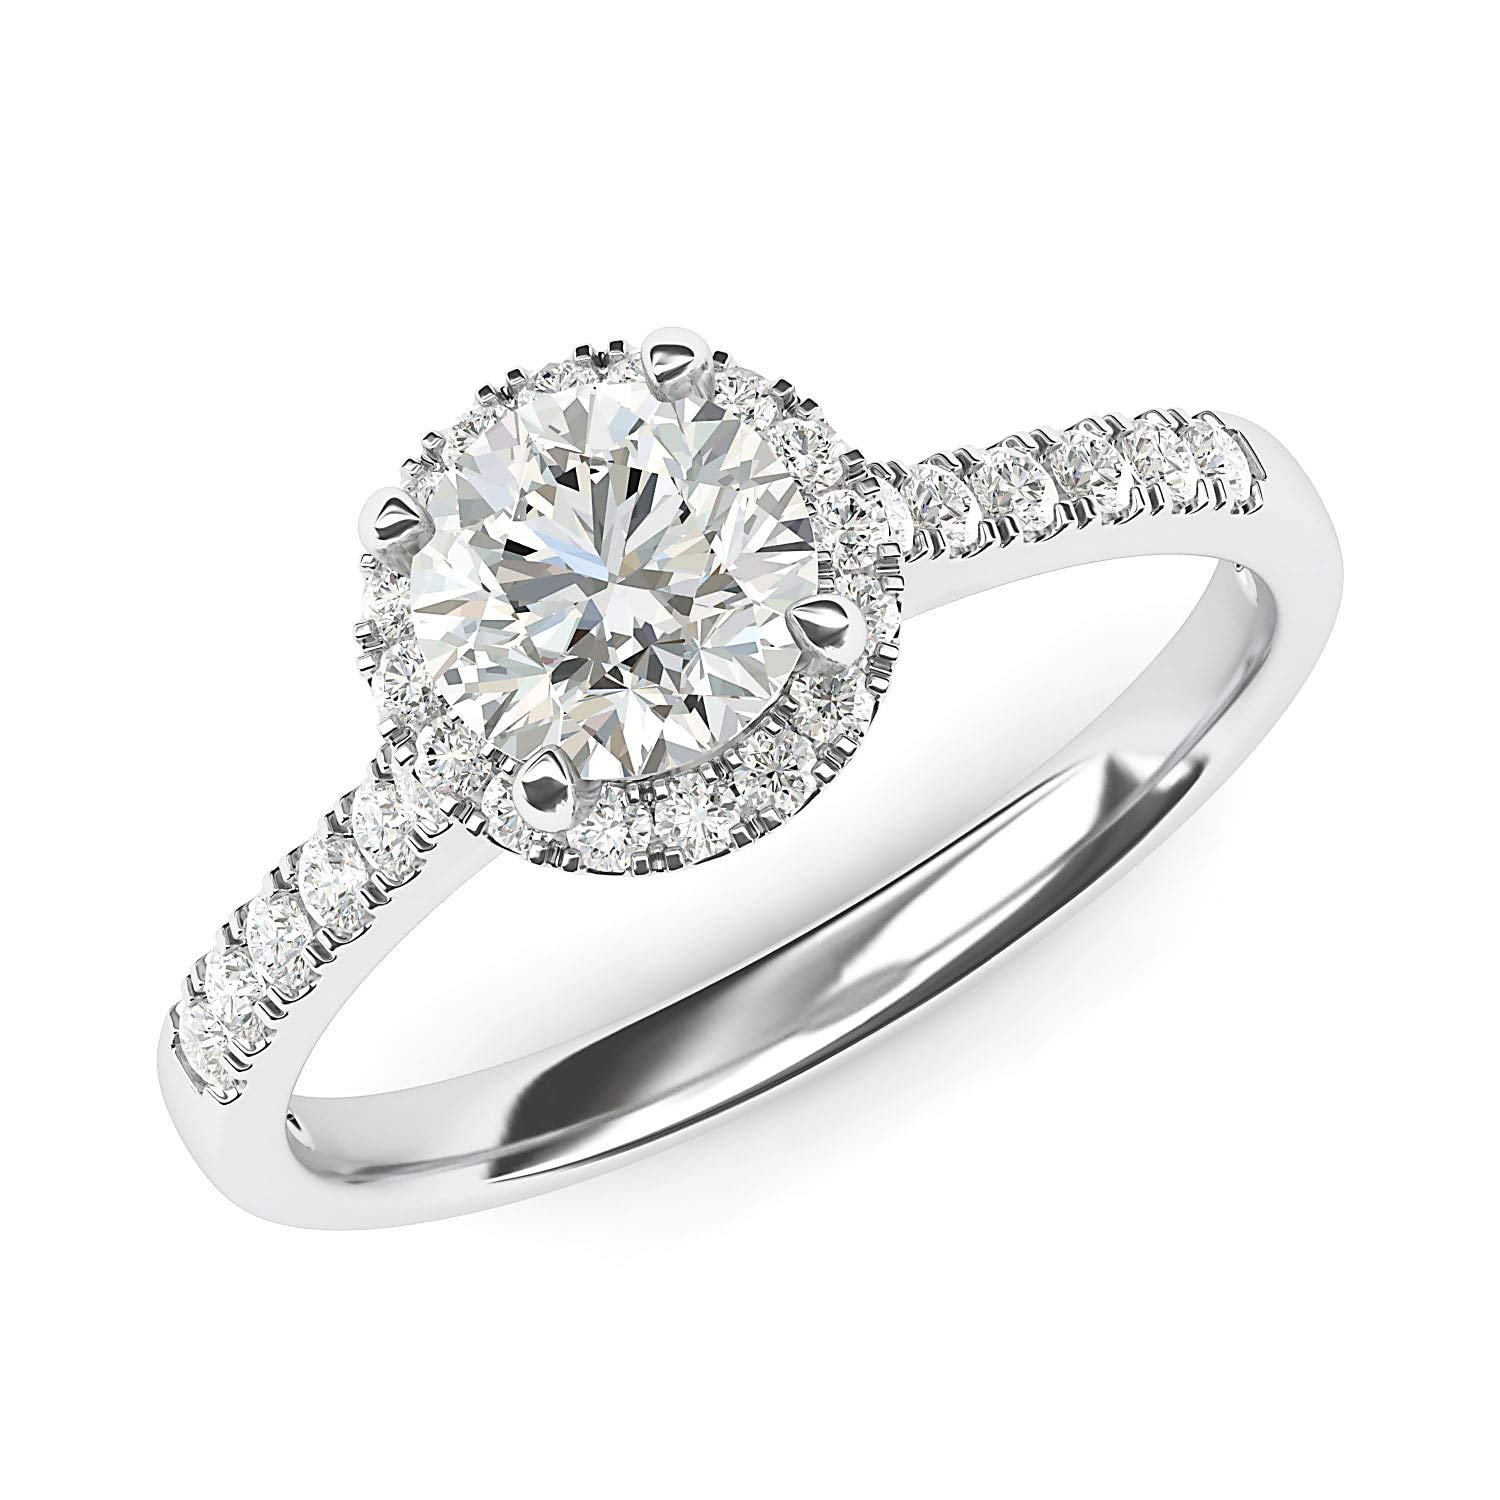 14k White Gold Classic Simulated Round Brilliant Cut Diamond Halo Engagement Ring with Side Stones (6.5) by THELANDA (Image #2)